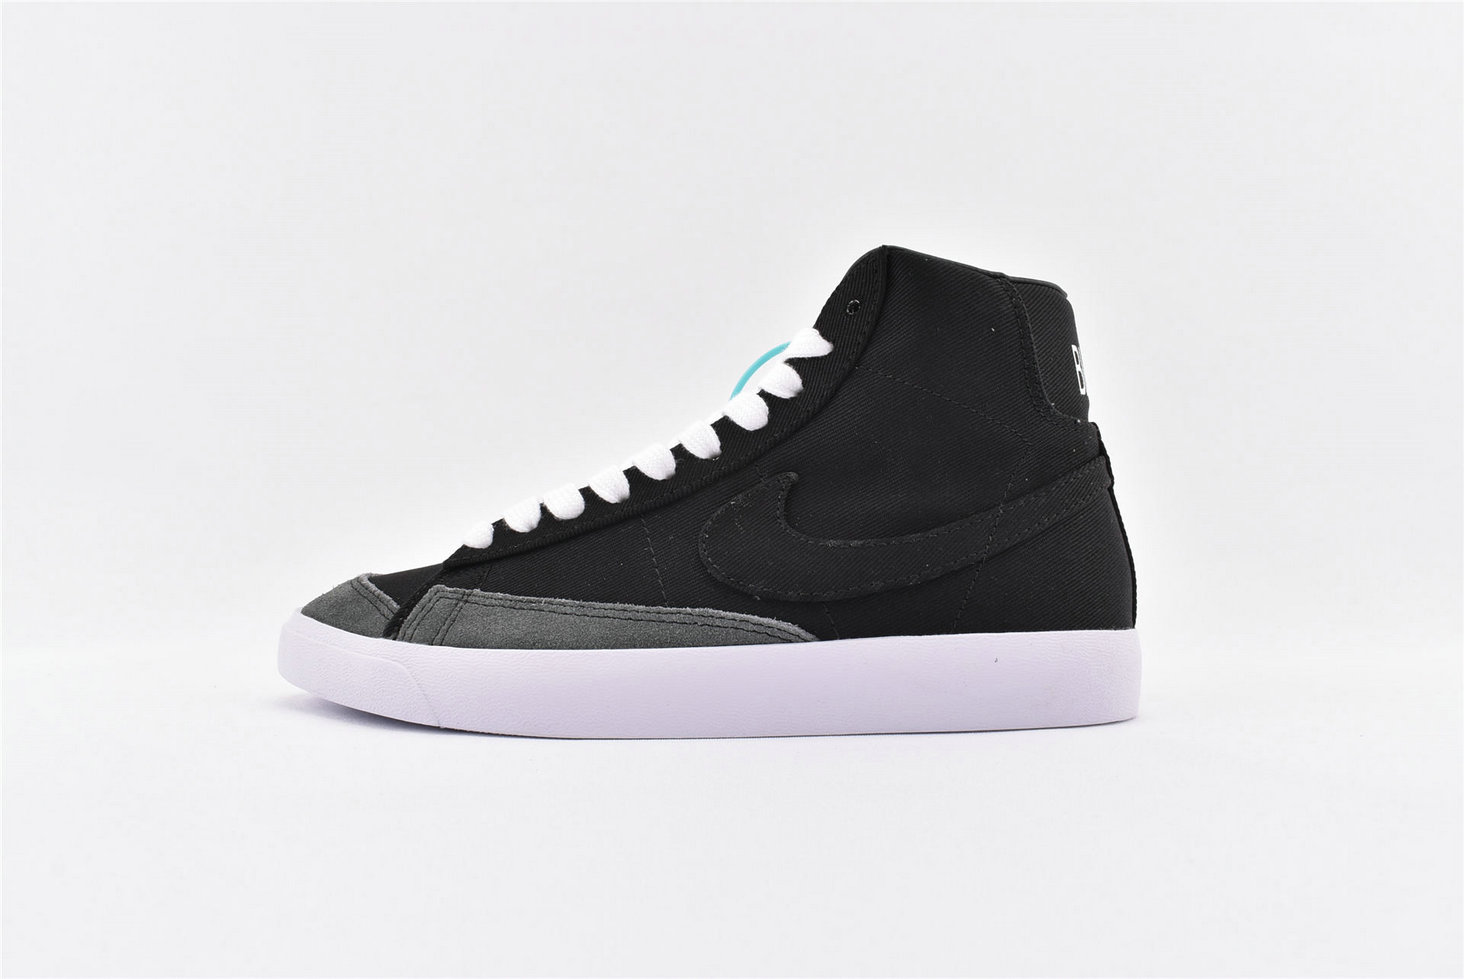 Where To Buy Cheap Nike Blazer Mid Vintage 77 Black White CD8238-001